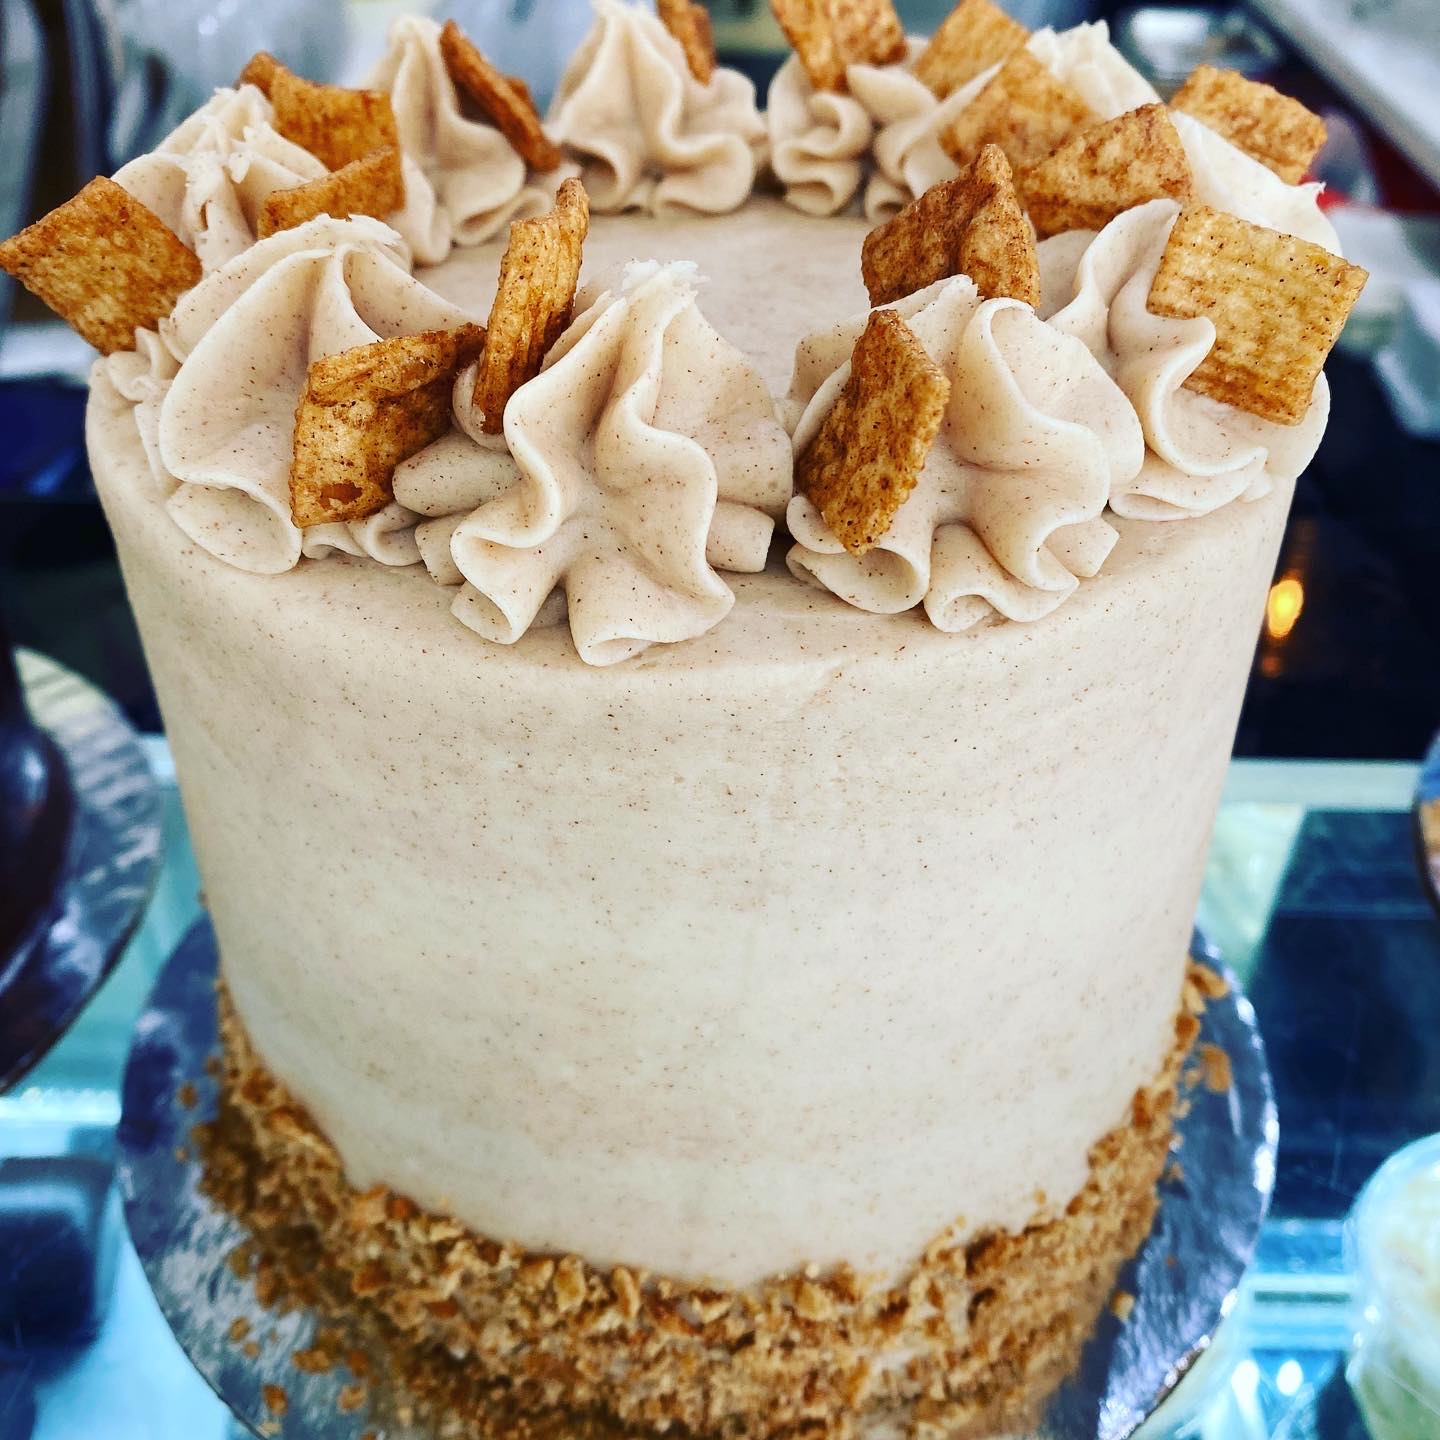 Cinnamon Toast Crunch Cake- Cinnamon cake with brown sugar buttercream and your favorite cereal inside and out.